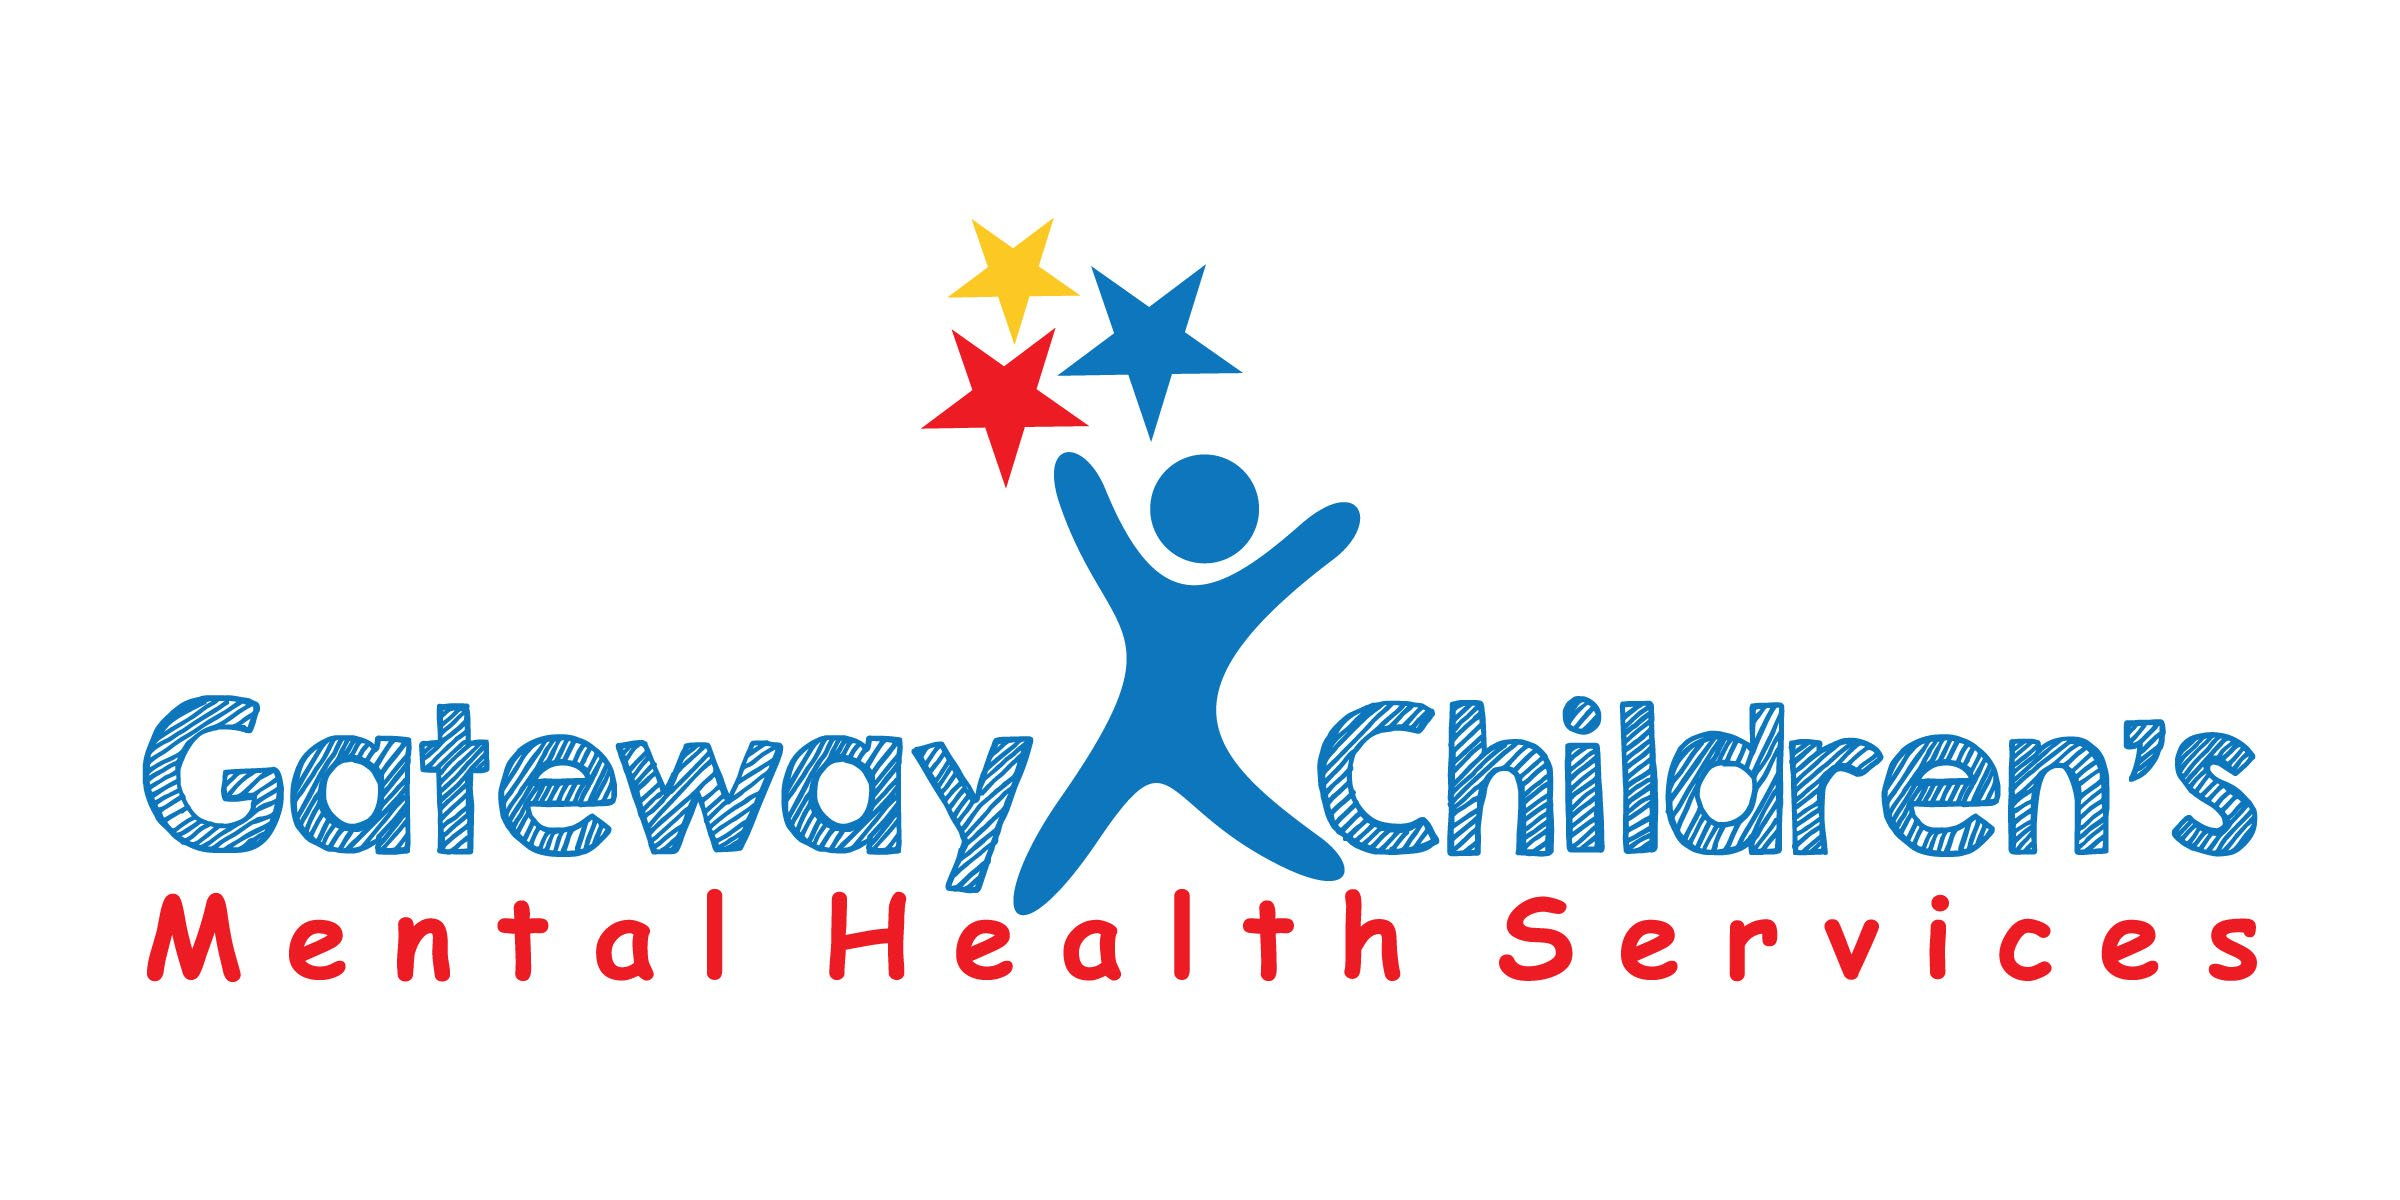 Gateways Hospital And Mental Health Center Diagne Nuevodiario Co